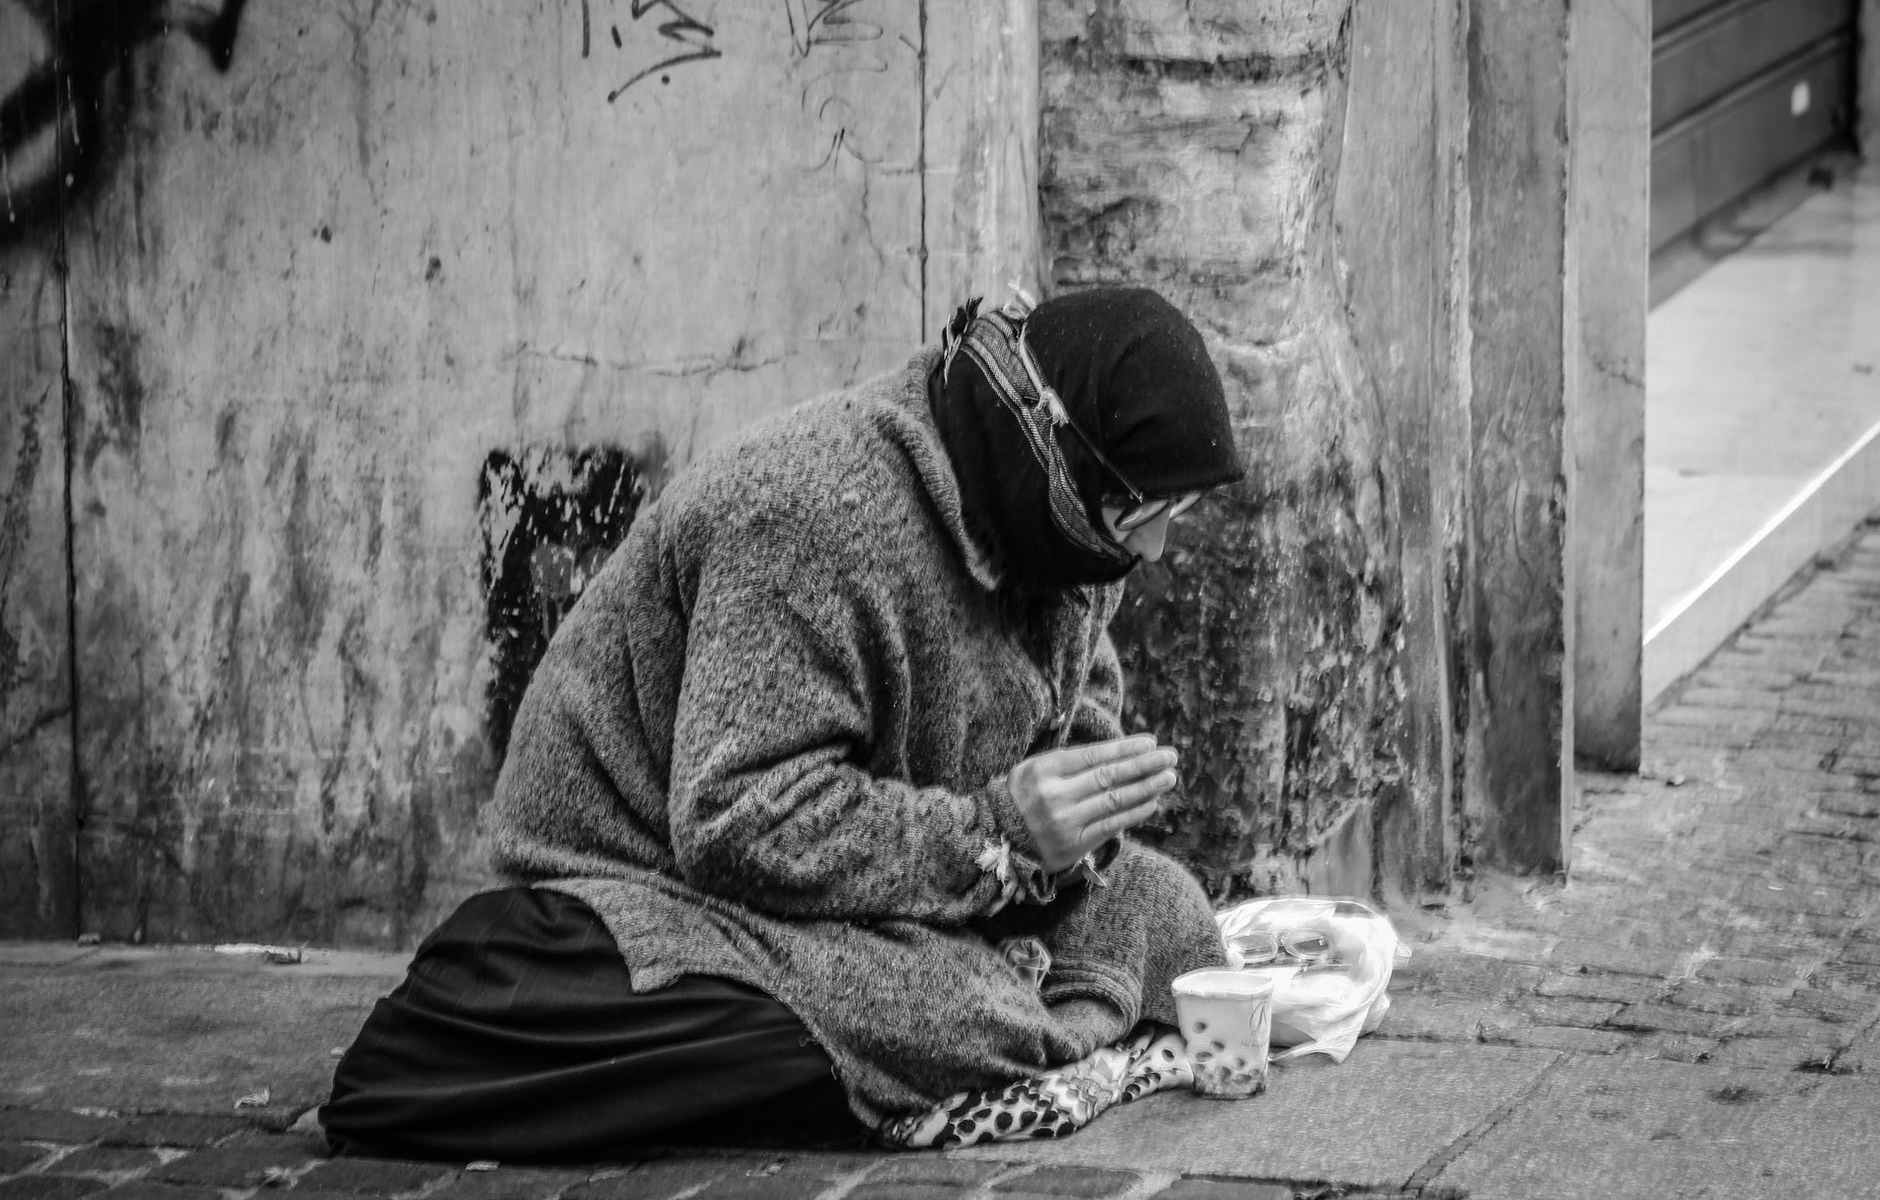 persone-senza-dimora-homeless-clochard